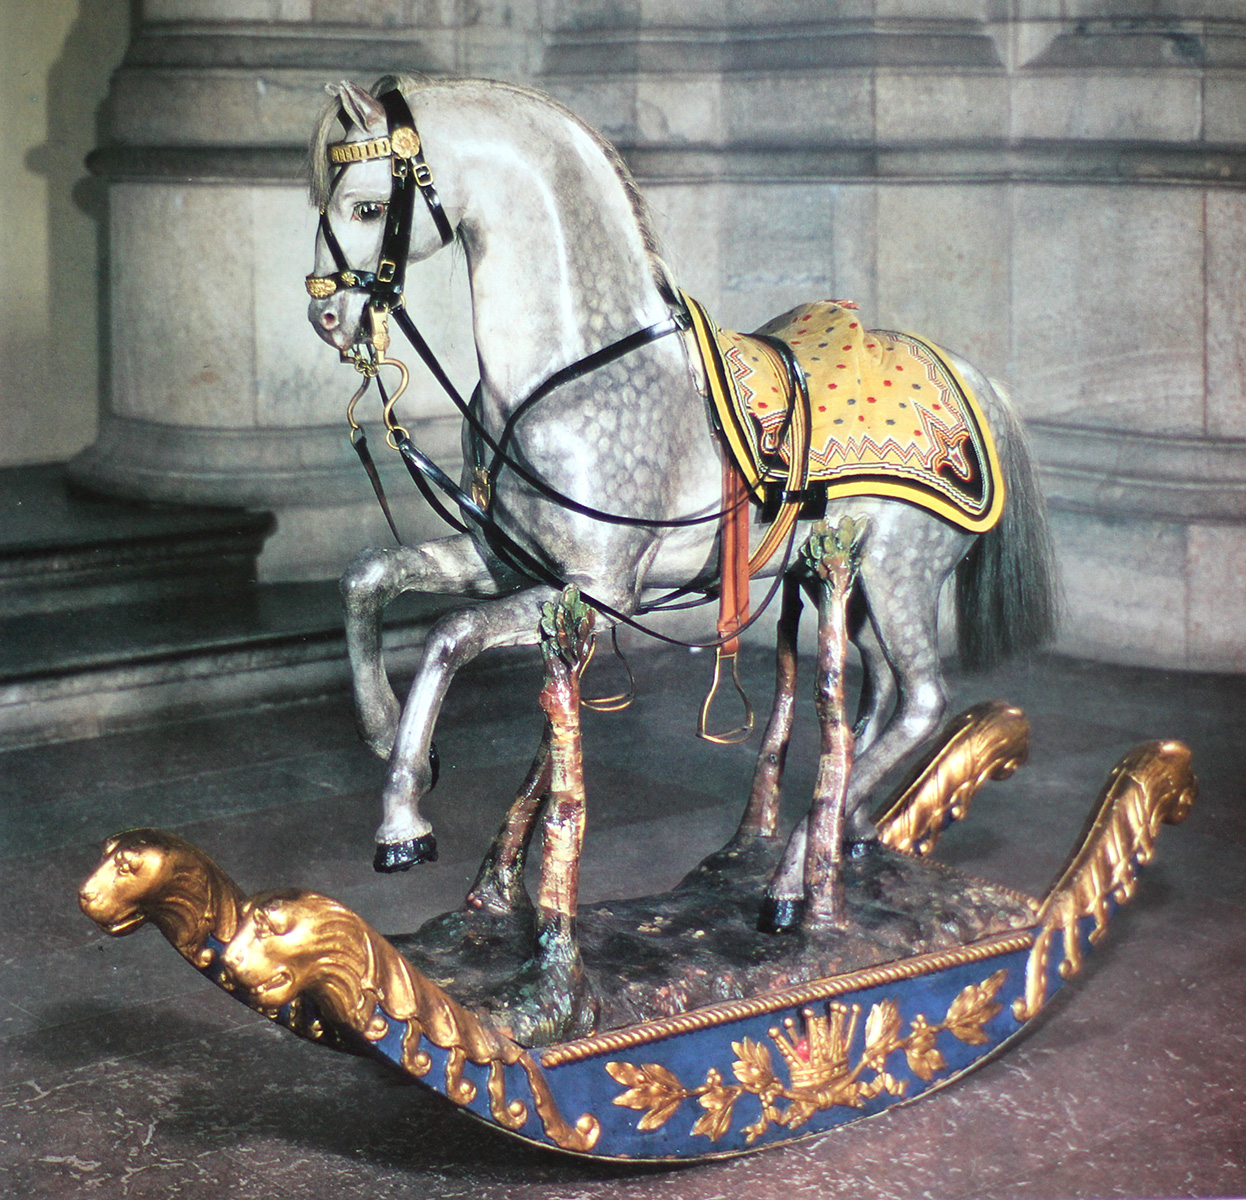 Лошадка Карла XV, короля Швеции, 1830 Rocking horse made in 1830 for the u young Swedish King Karl X